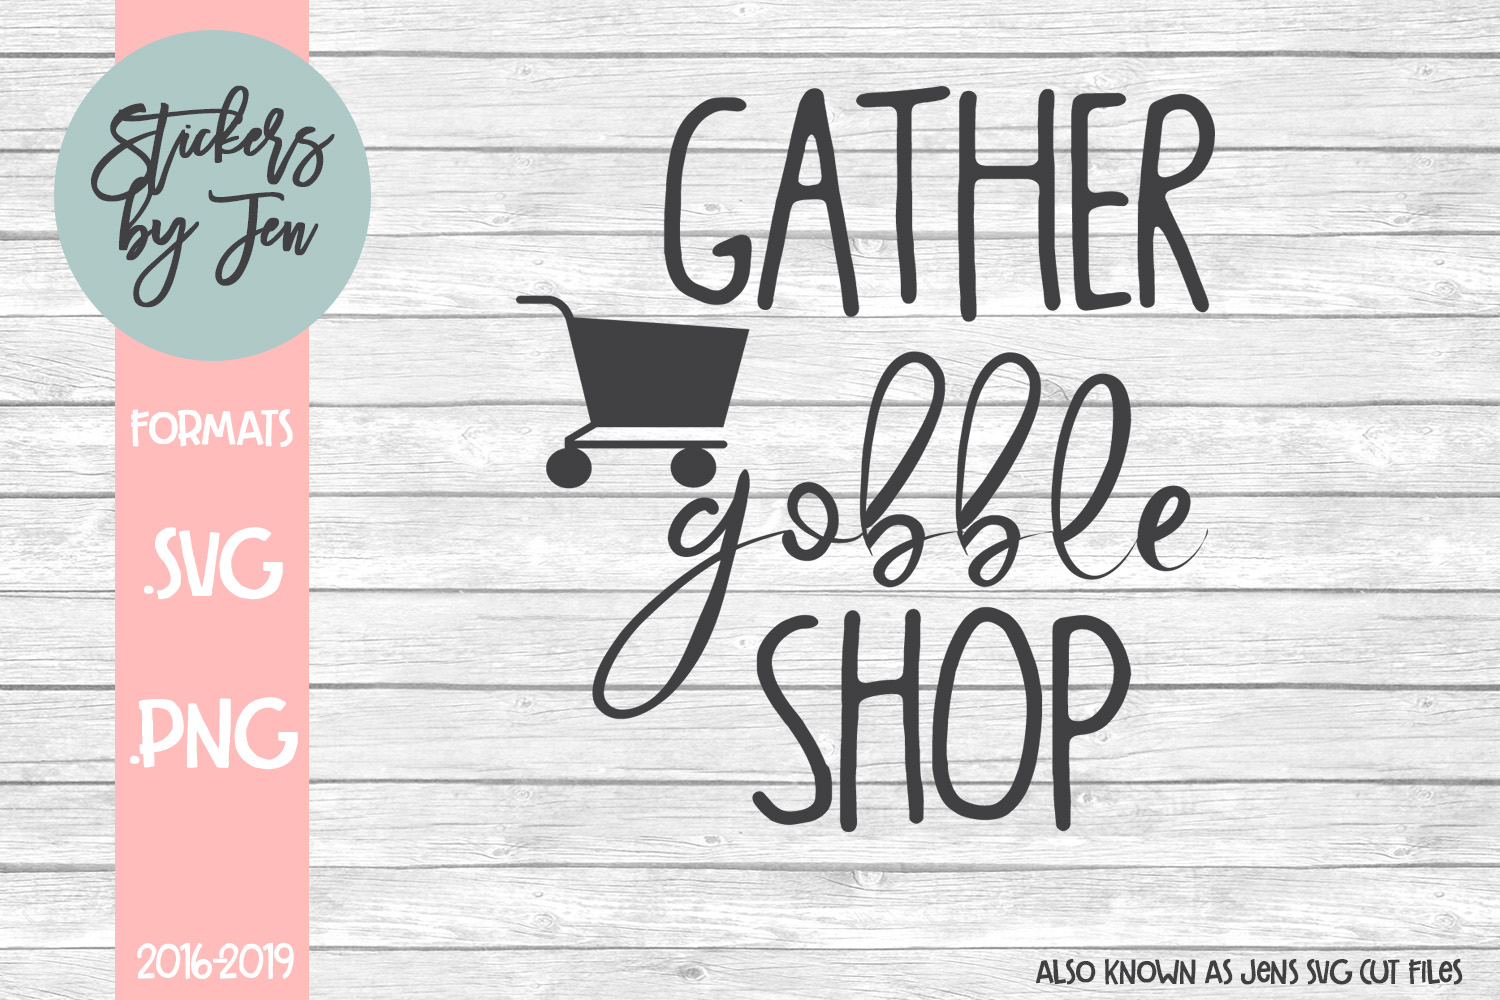 Download Free Gather Gobble Shop Svg Graphic By Stickers By Jennifer for Cricut Explore, Silhouette and other cutting machines.